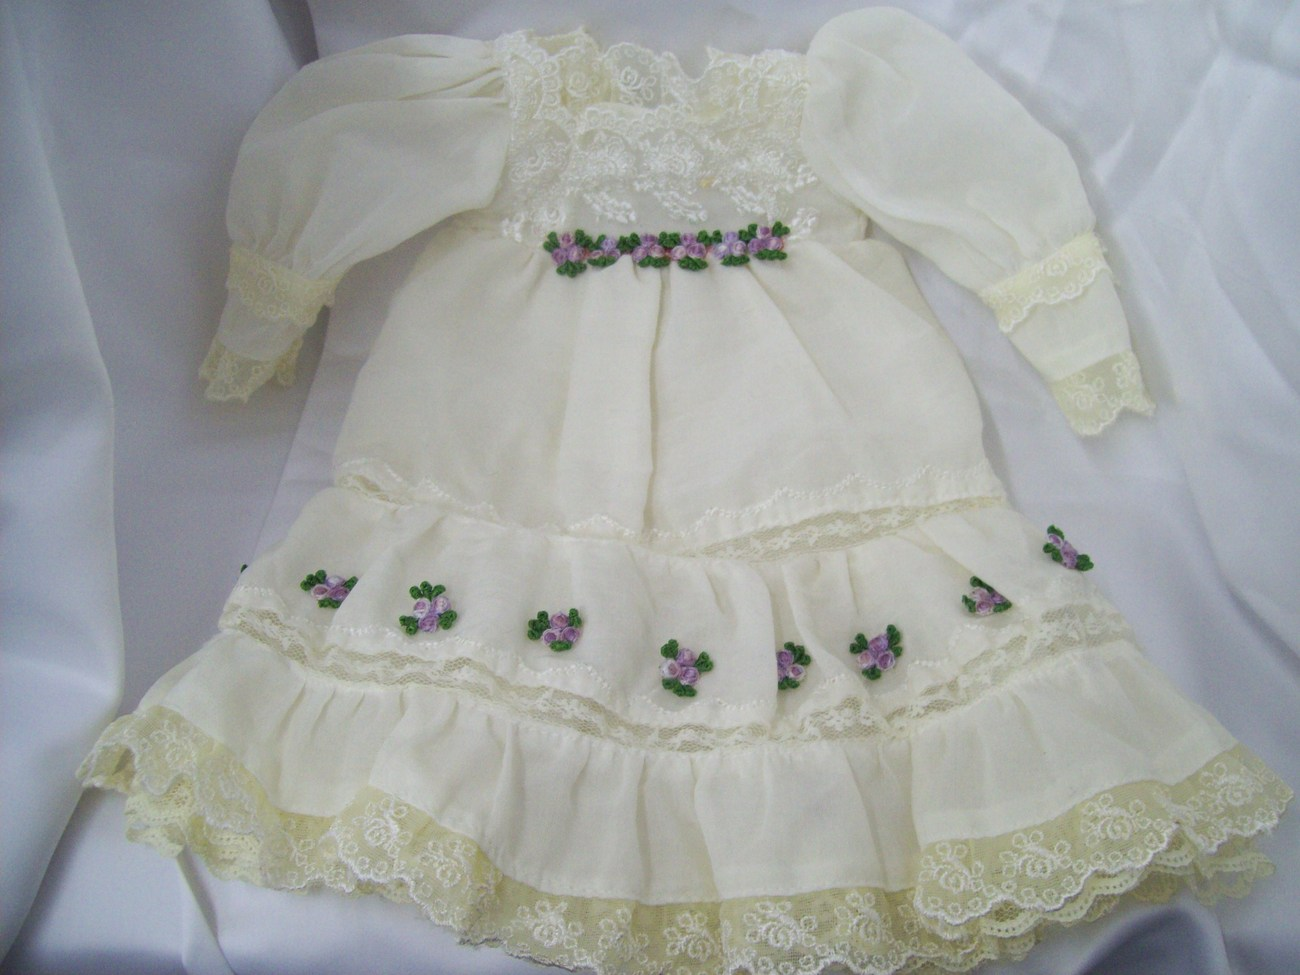 Victorian Style Doll Outfit Includes Dress, Bloomers, Shoes, Bows and Flower Hea